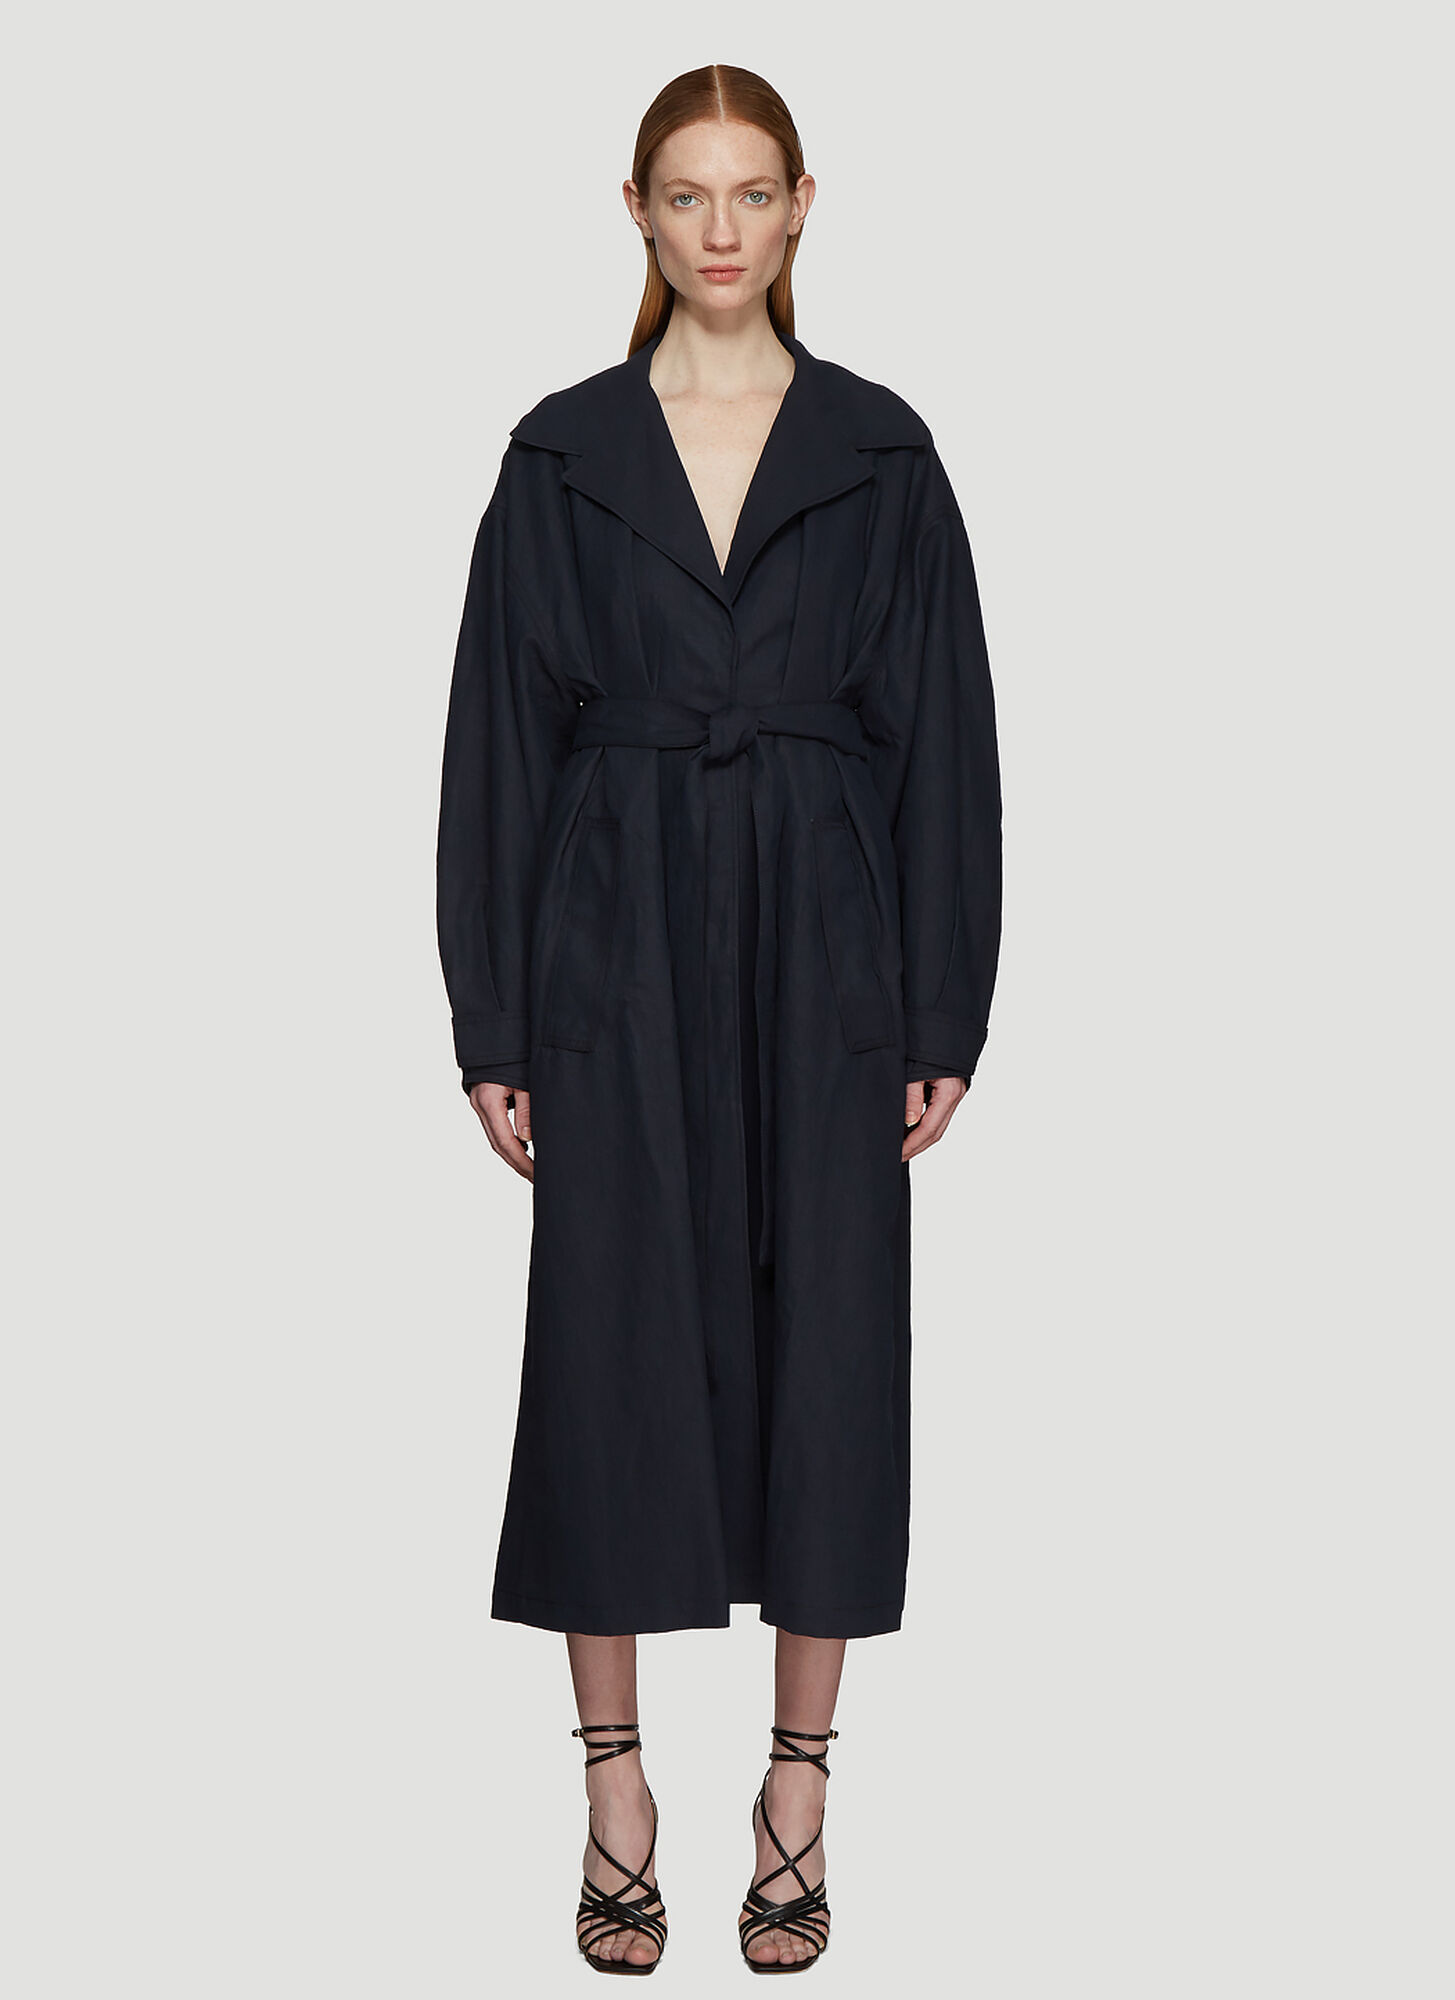 Jacquemus Le Manteau Claudia in Navy size FR - 34